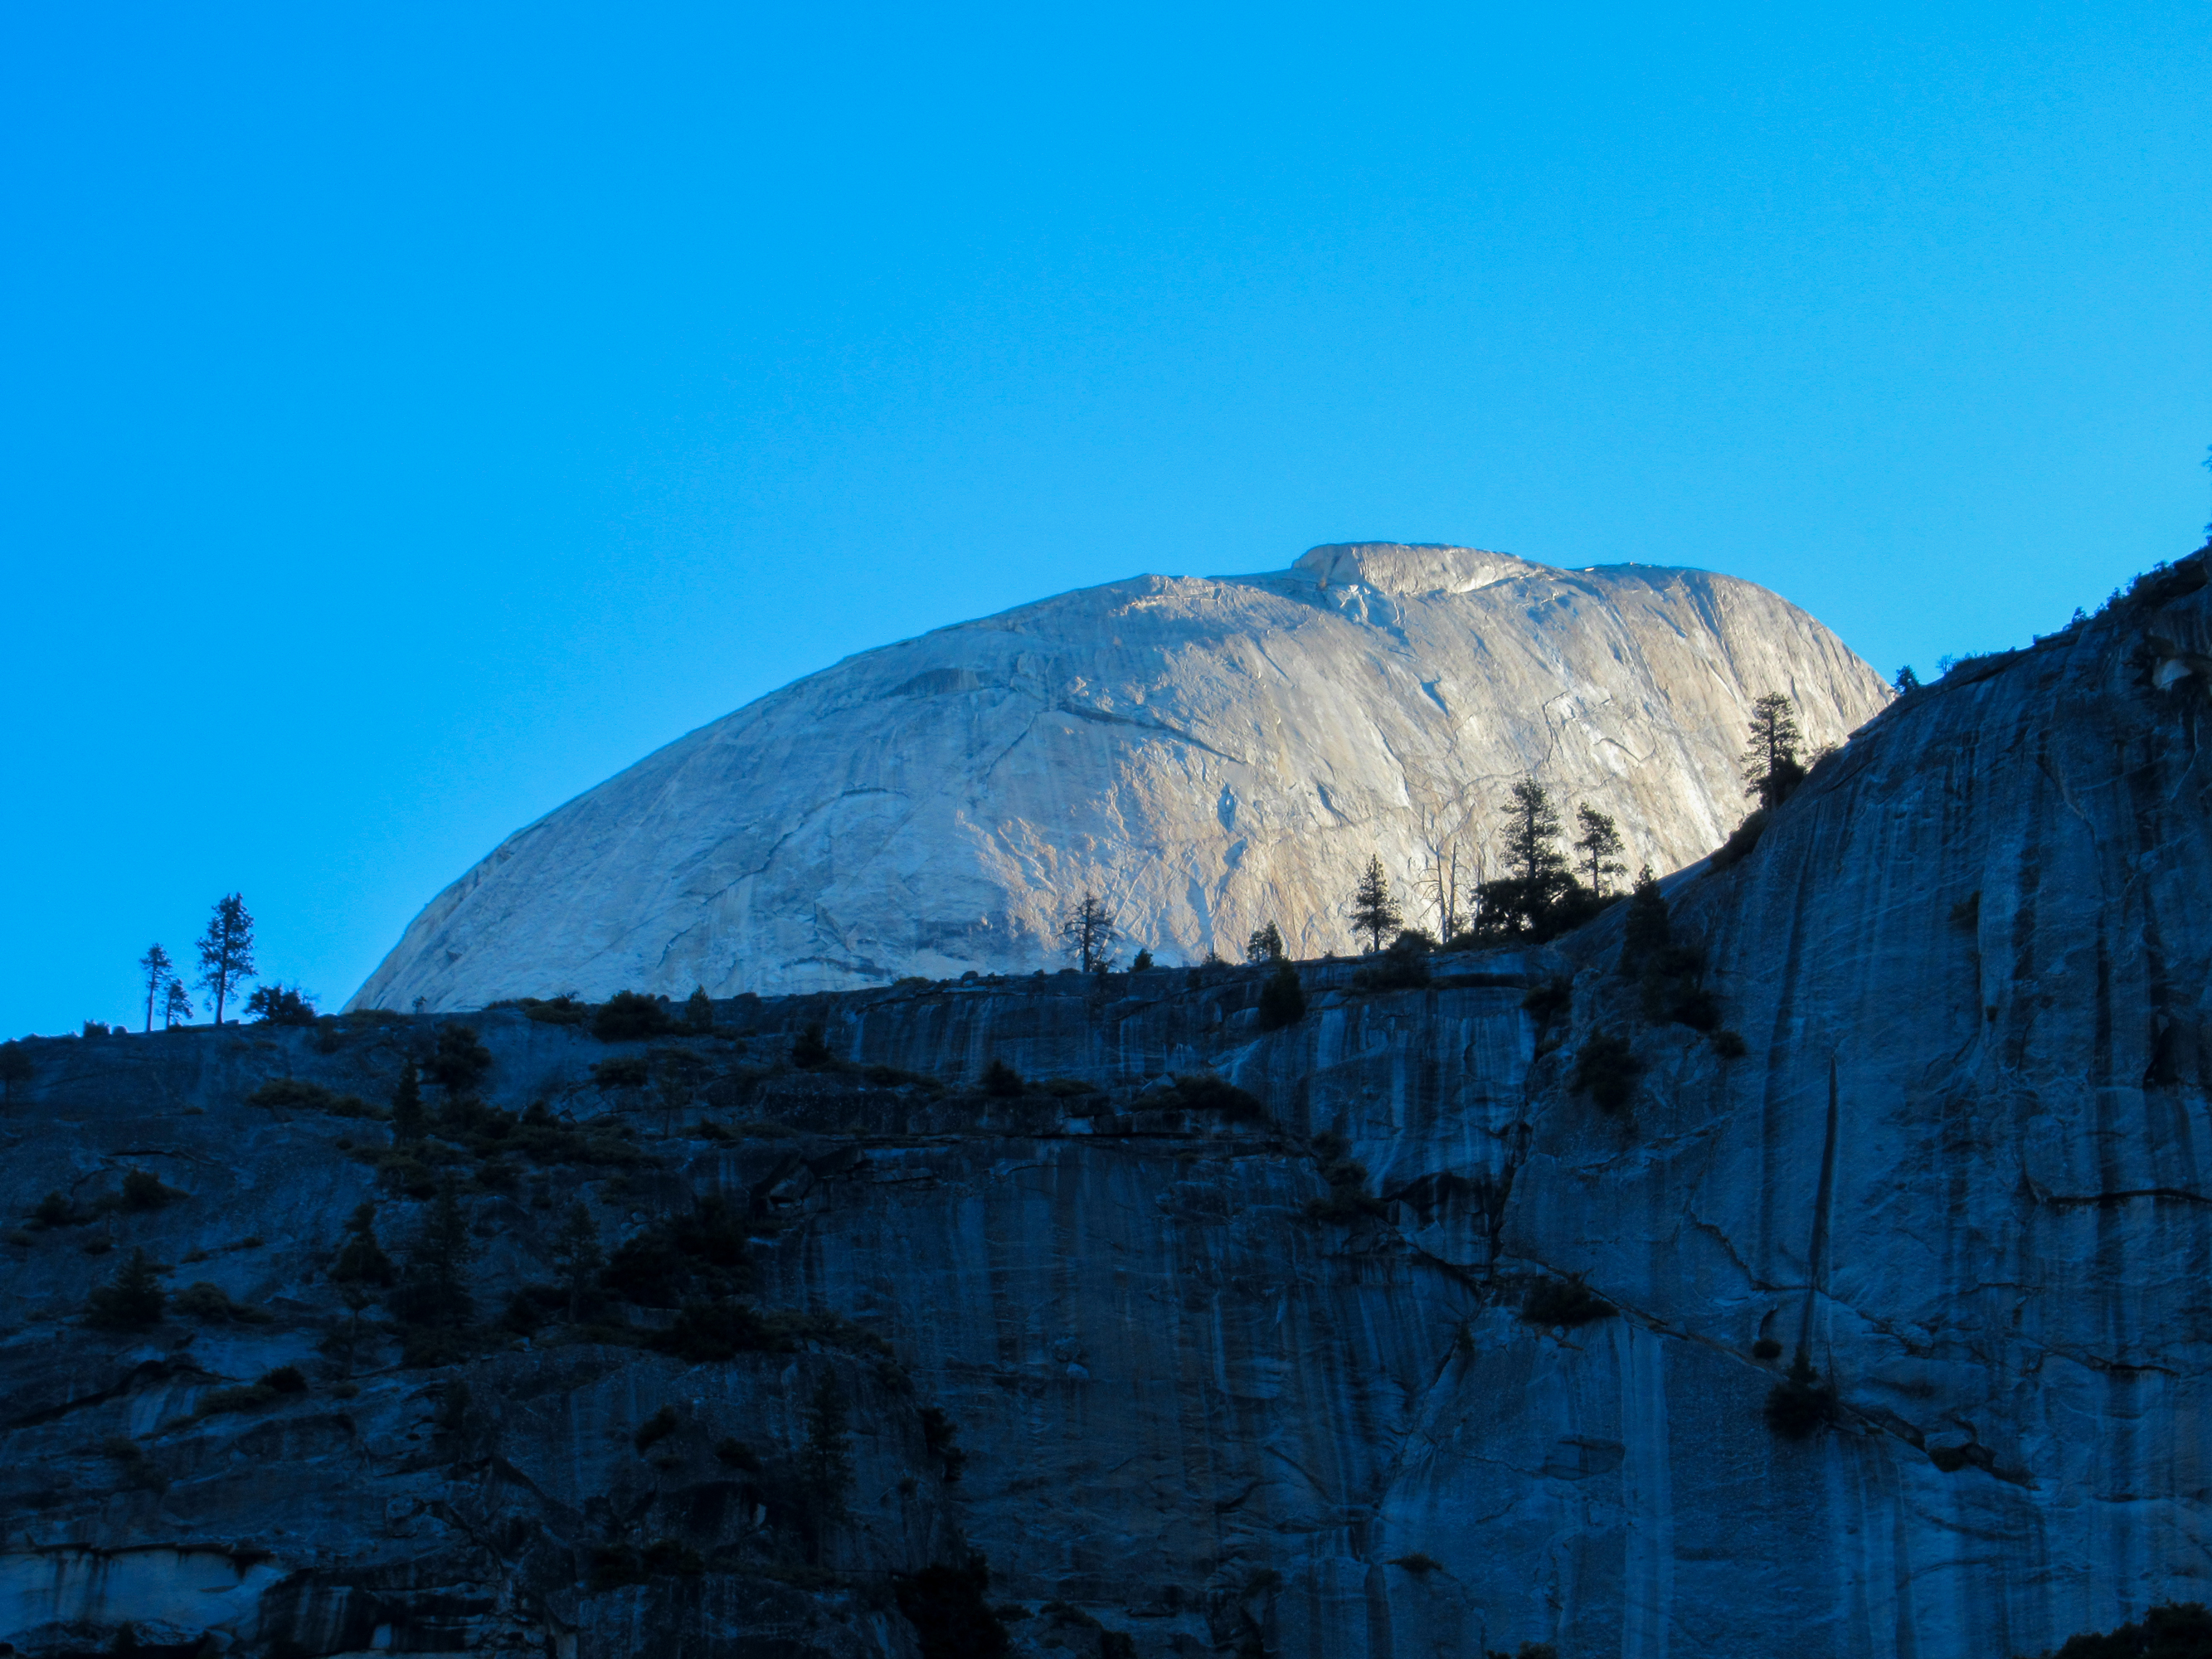 Sunrise shines on the backside of Half Dome.